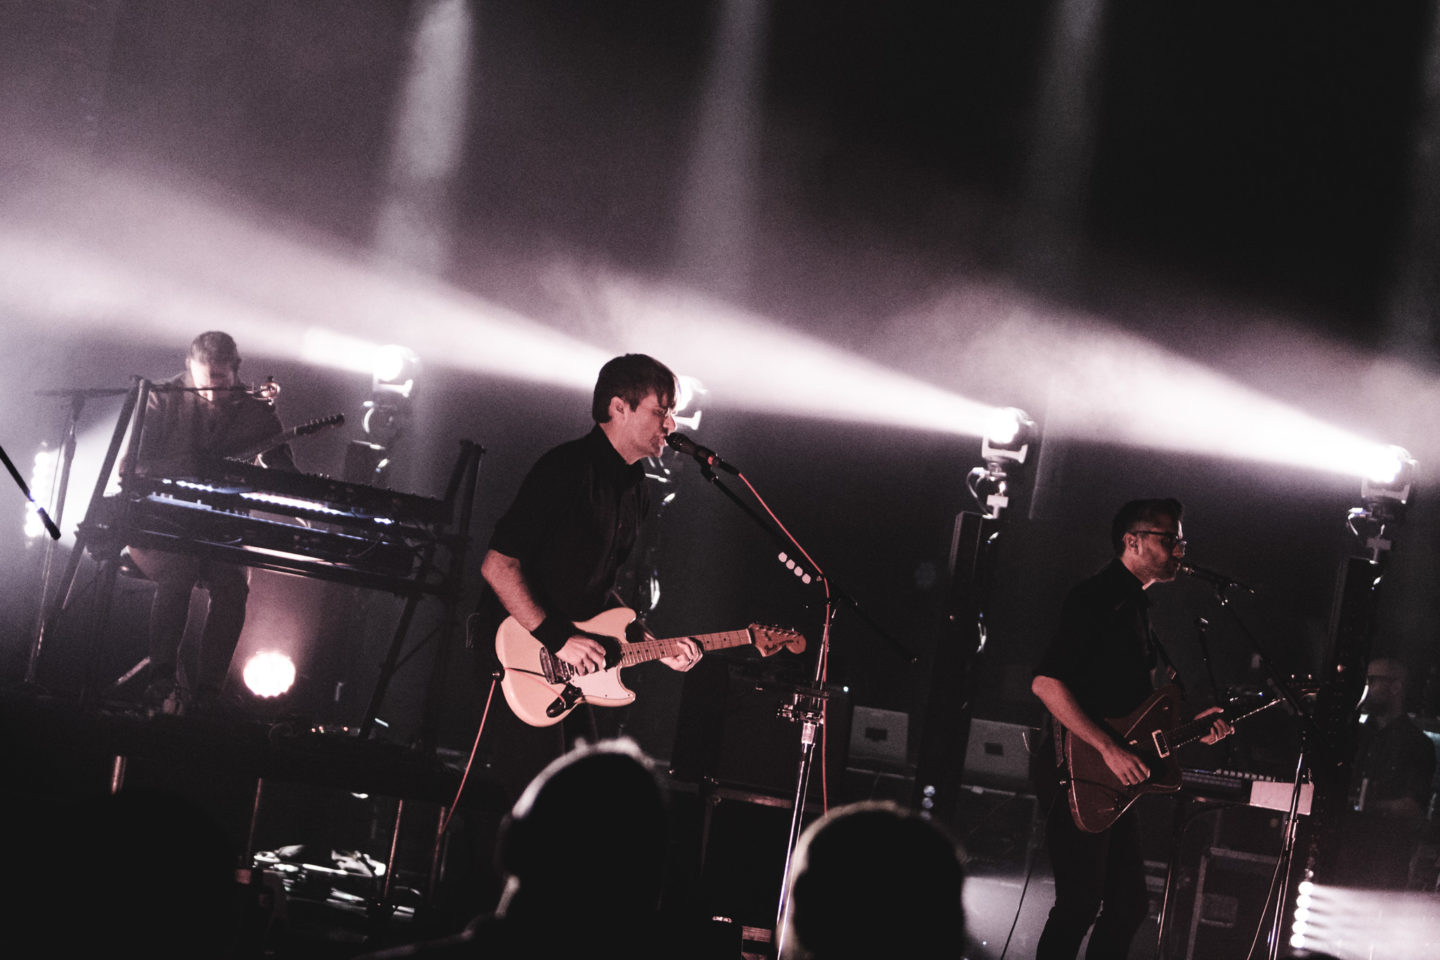 Death Cab for Cutie at Auditorium Theatre Chicago